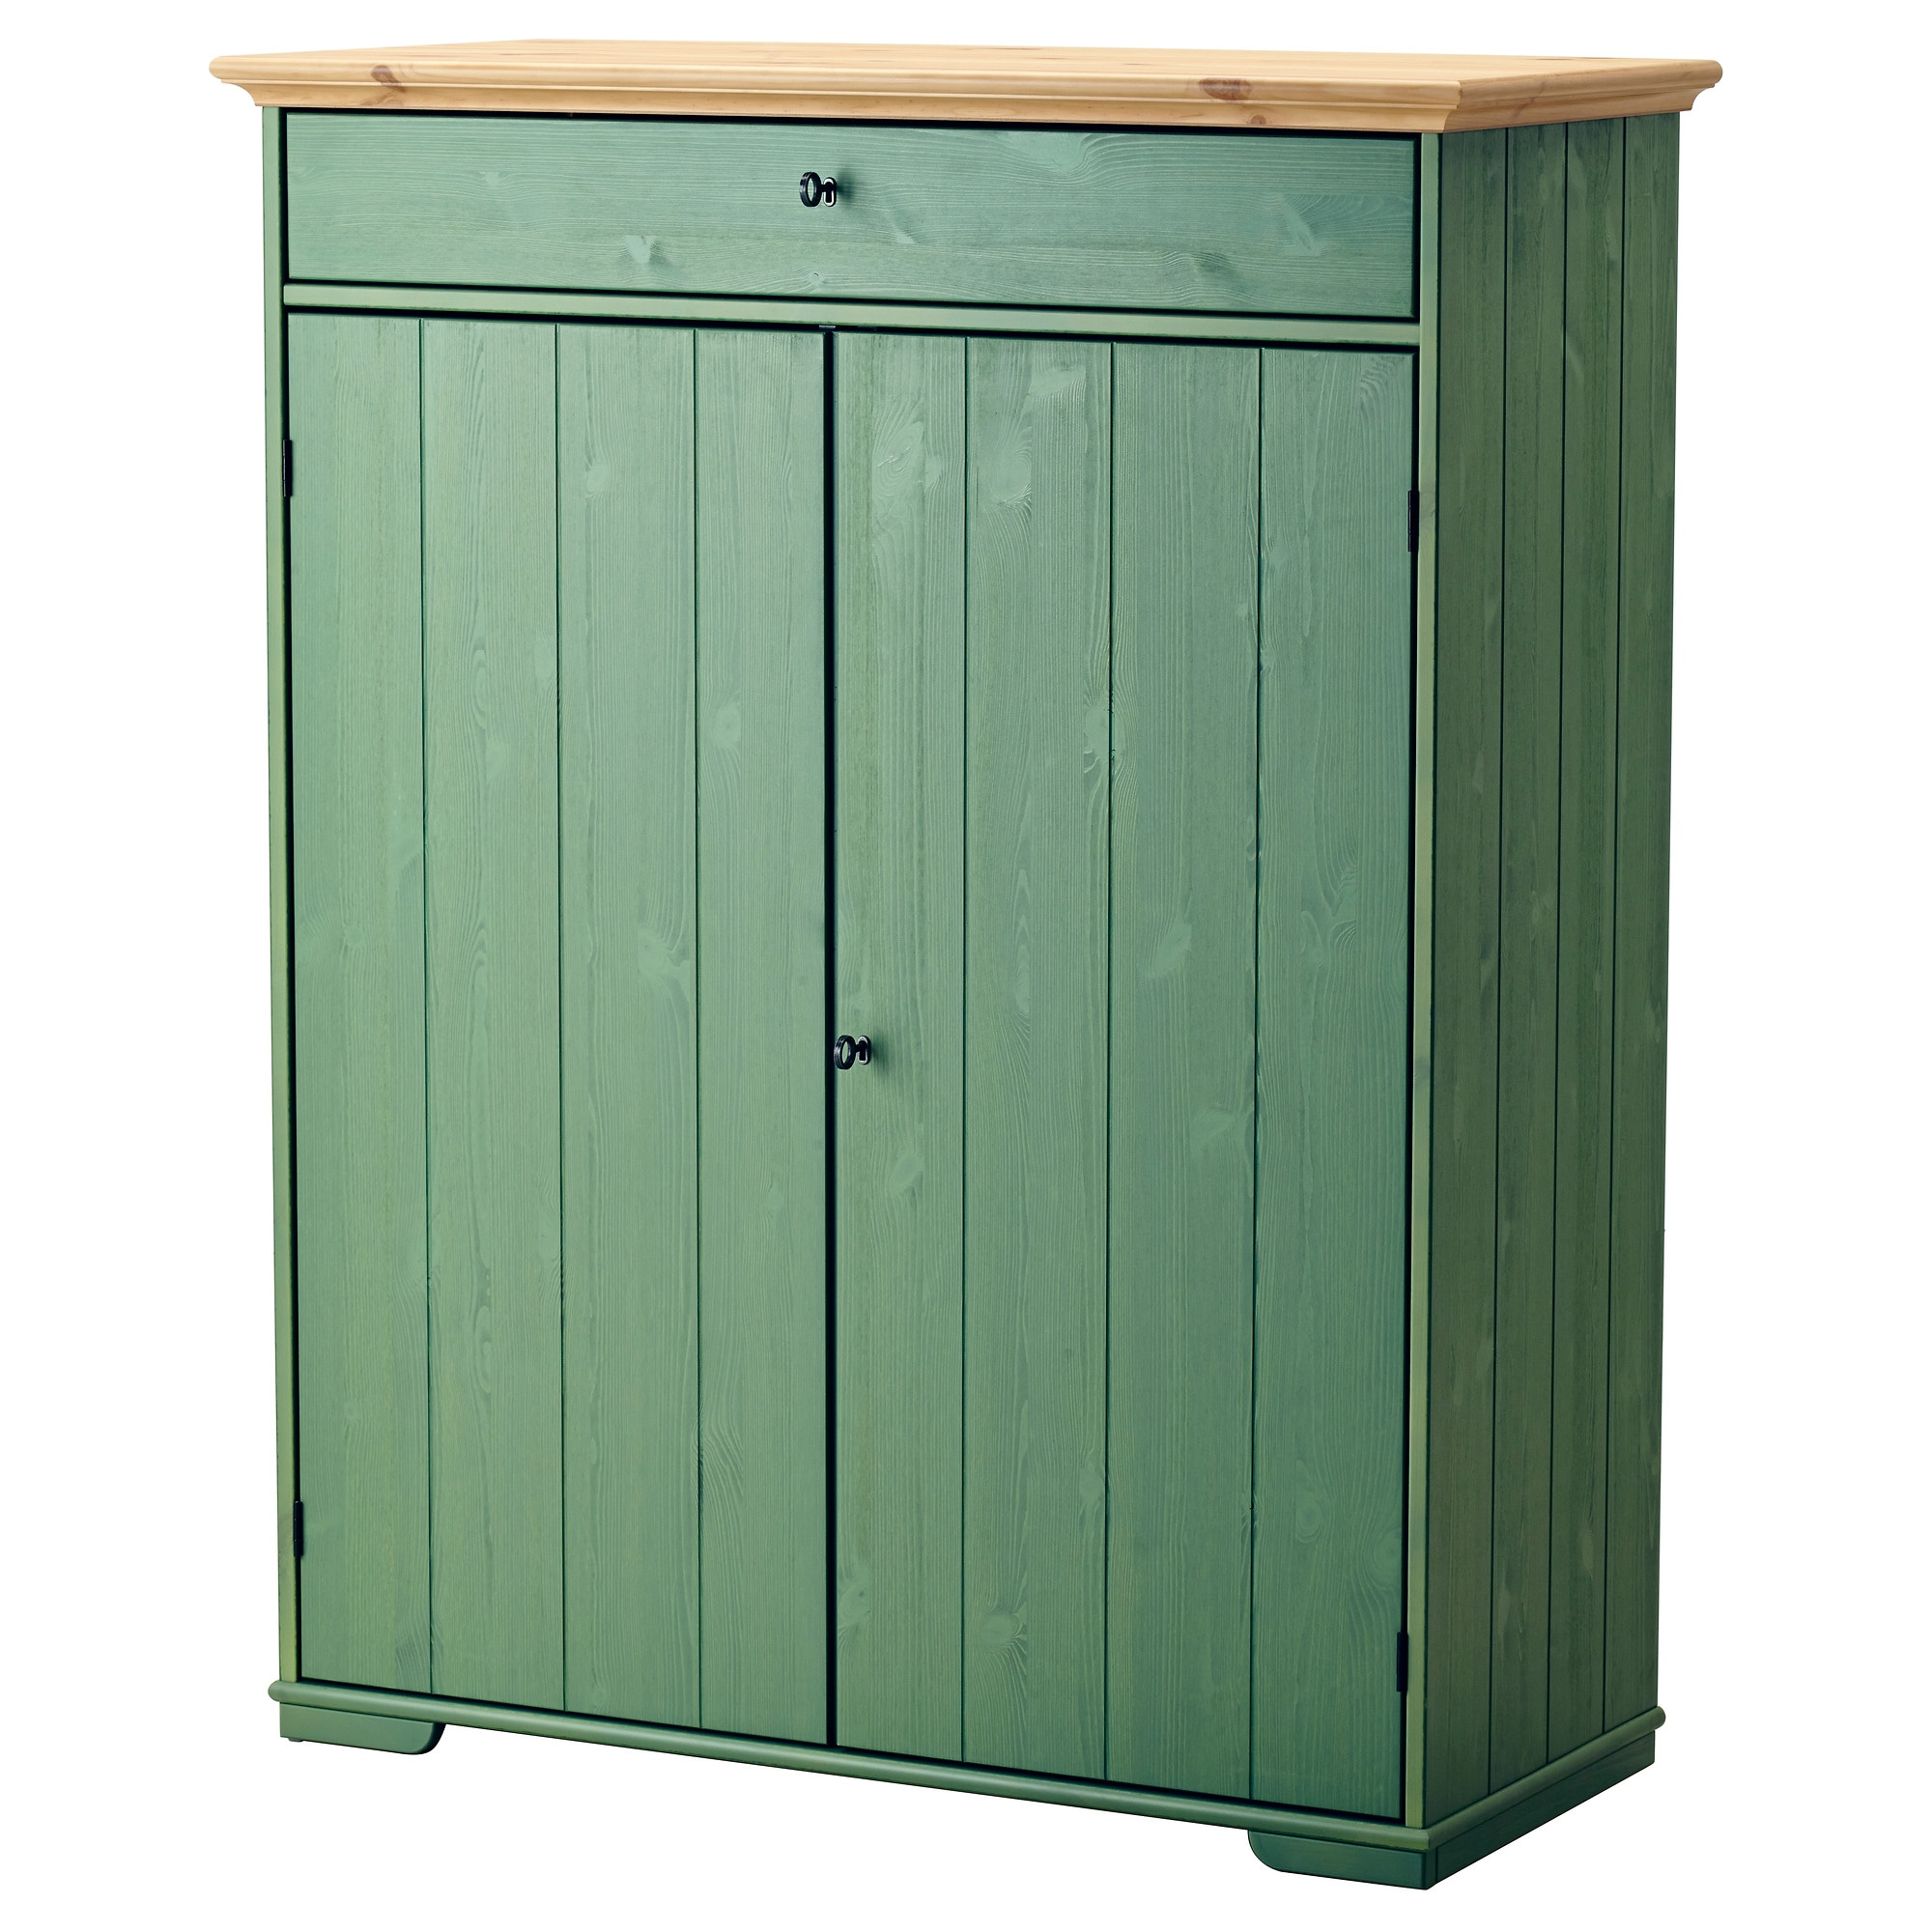 cabinet storage ikea uk in shed farmhouse countertops sink standing kitchens free astonishing cabinets size units of base sheds kitchen stock with set lowes full freestanding